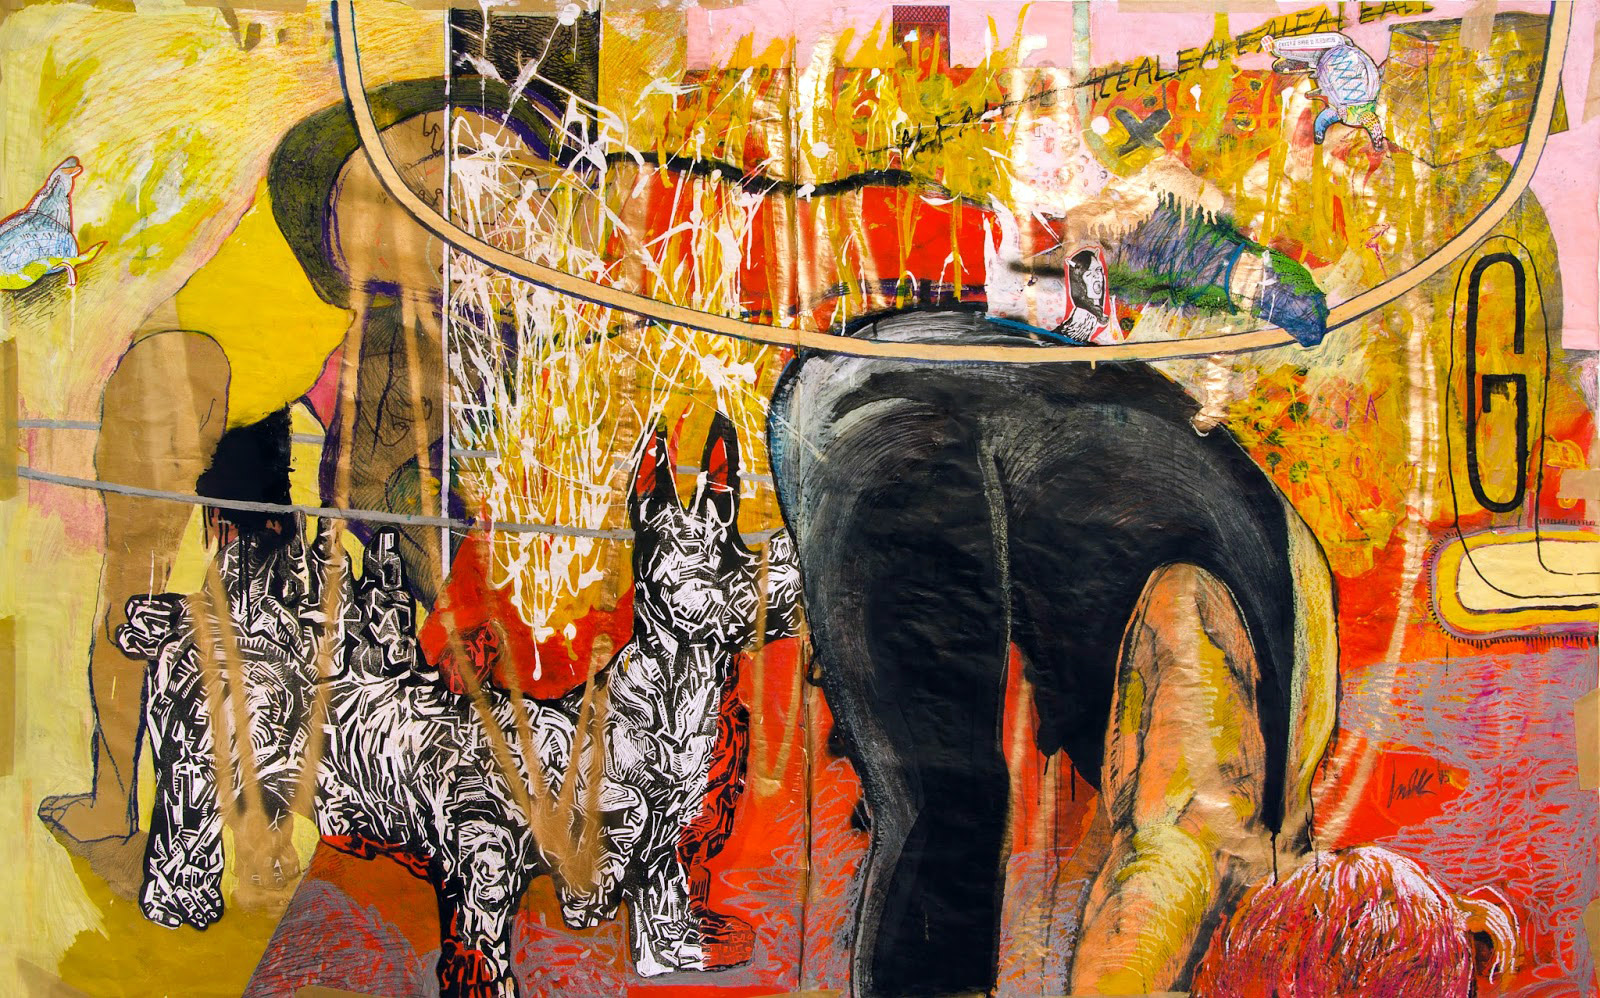 paintings, expressive, illustrative, animals, moods, movement, pets, black, gold, red, yellow, paper, marker, oil, pencils, other-mediums, abstract-forms, amusing, contemporary-art, danish, decorative, design, dogs, interior, interior-design, modern, modern-art, nordic, scandinavien, Buy original high quality art. Paintings, drawings, limited edition prints & posters by talented artists.